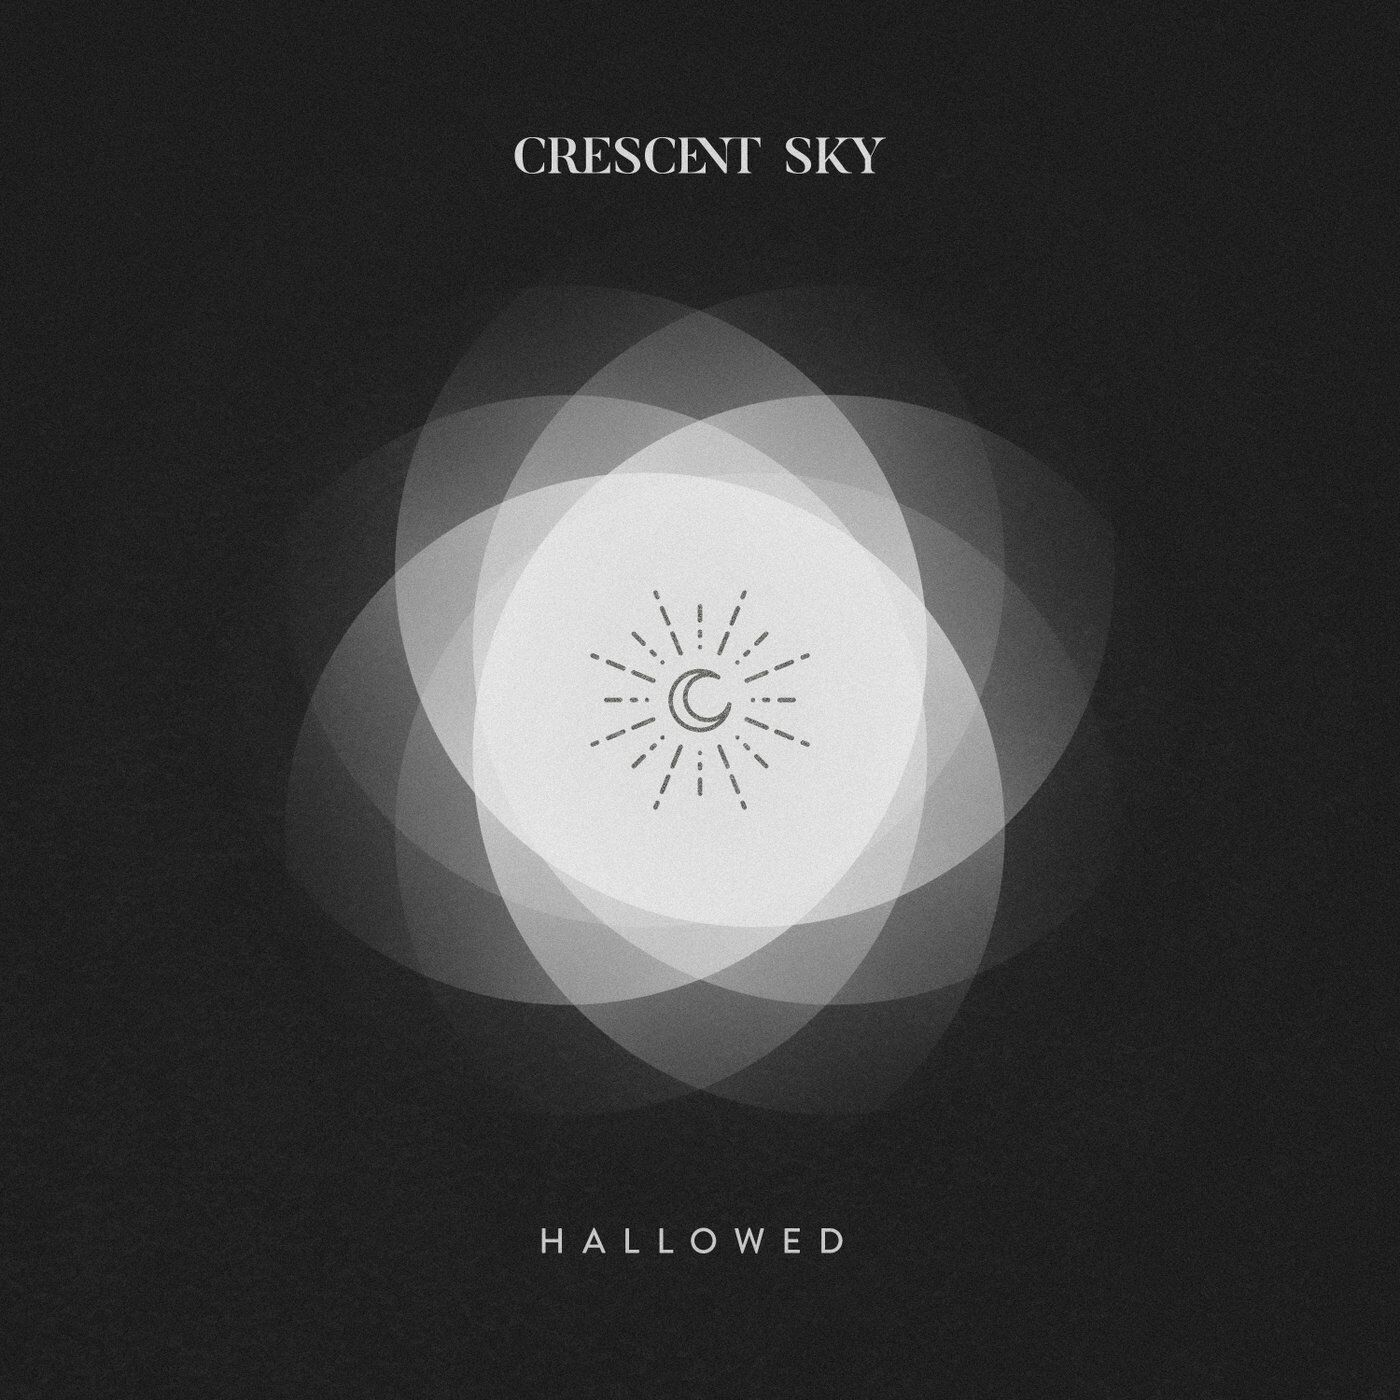 Crescent Sky - Hallowed [single] (2021)